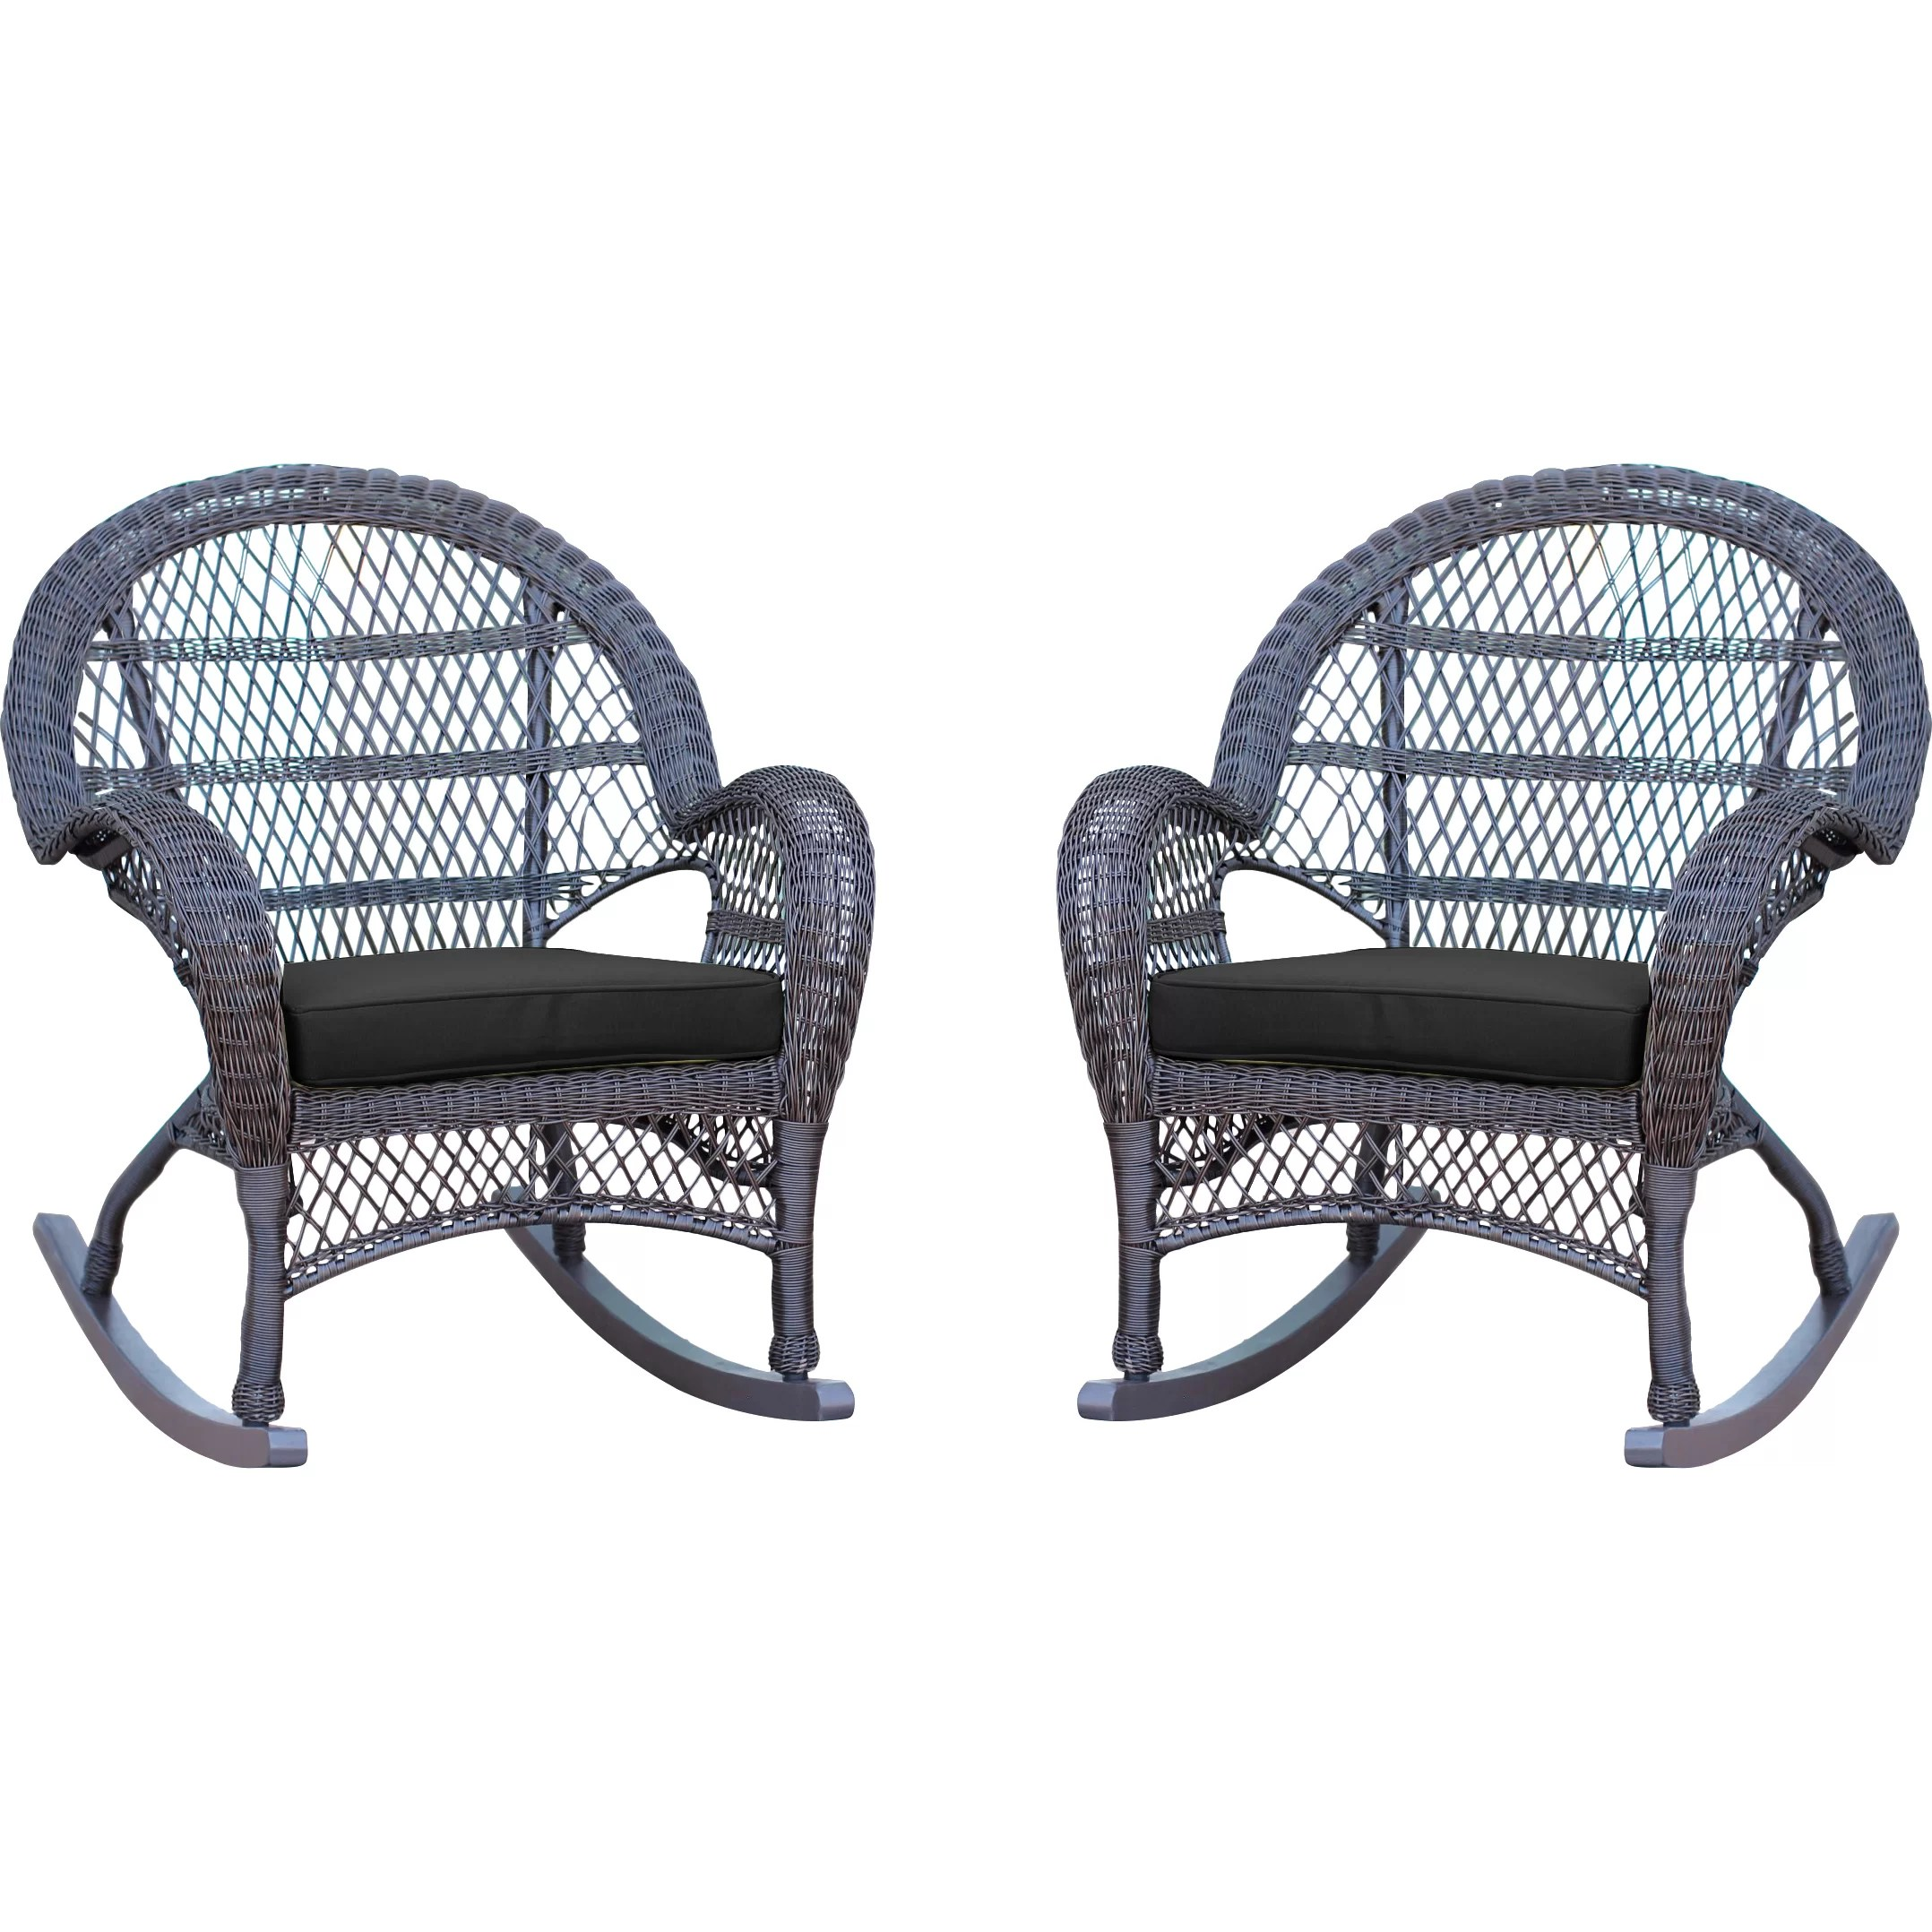 Black Wicker Rocking Chairs Jeco Inc Wicker Rocker Chair With Cushions And Reviews